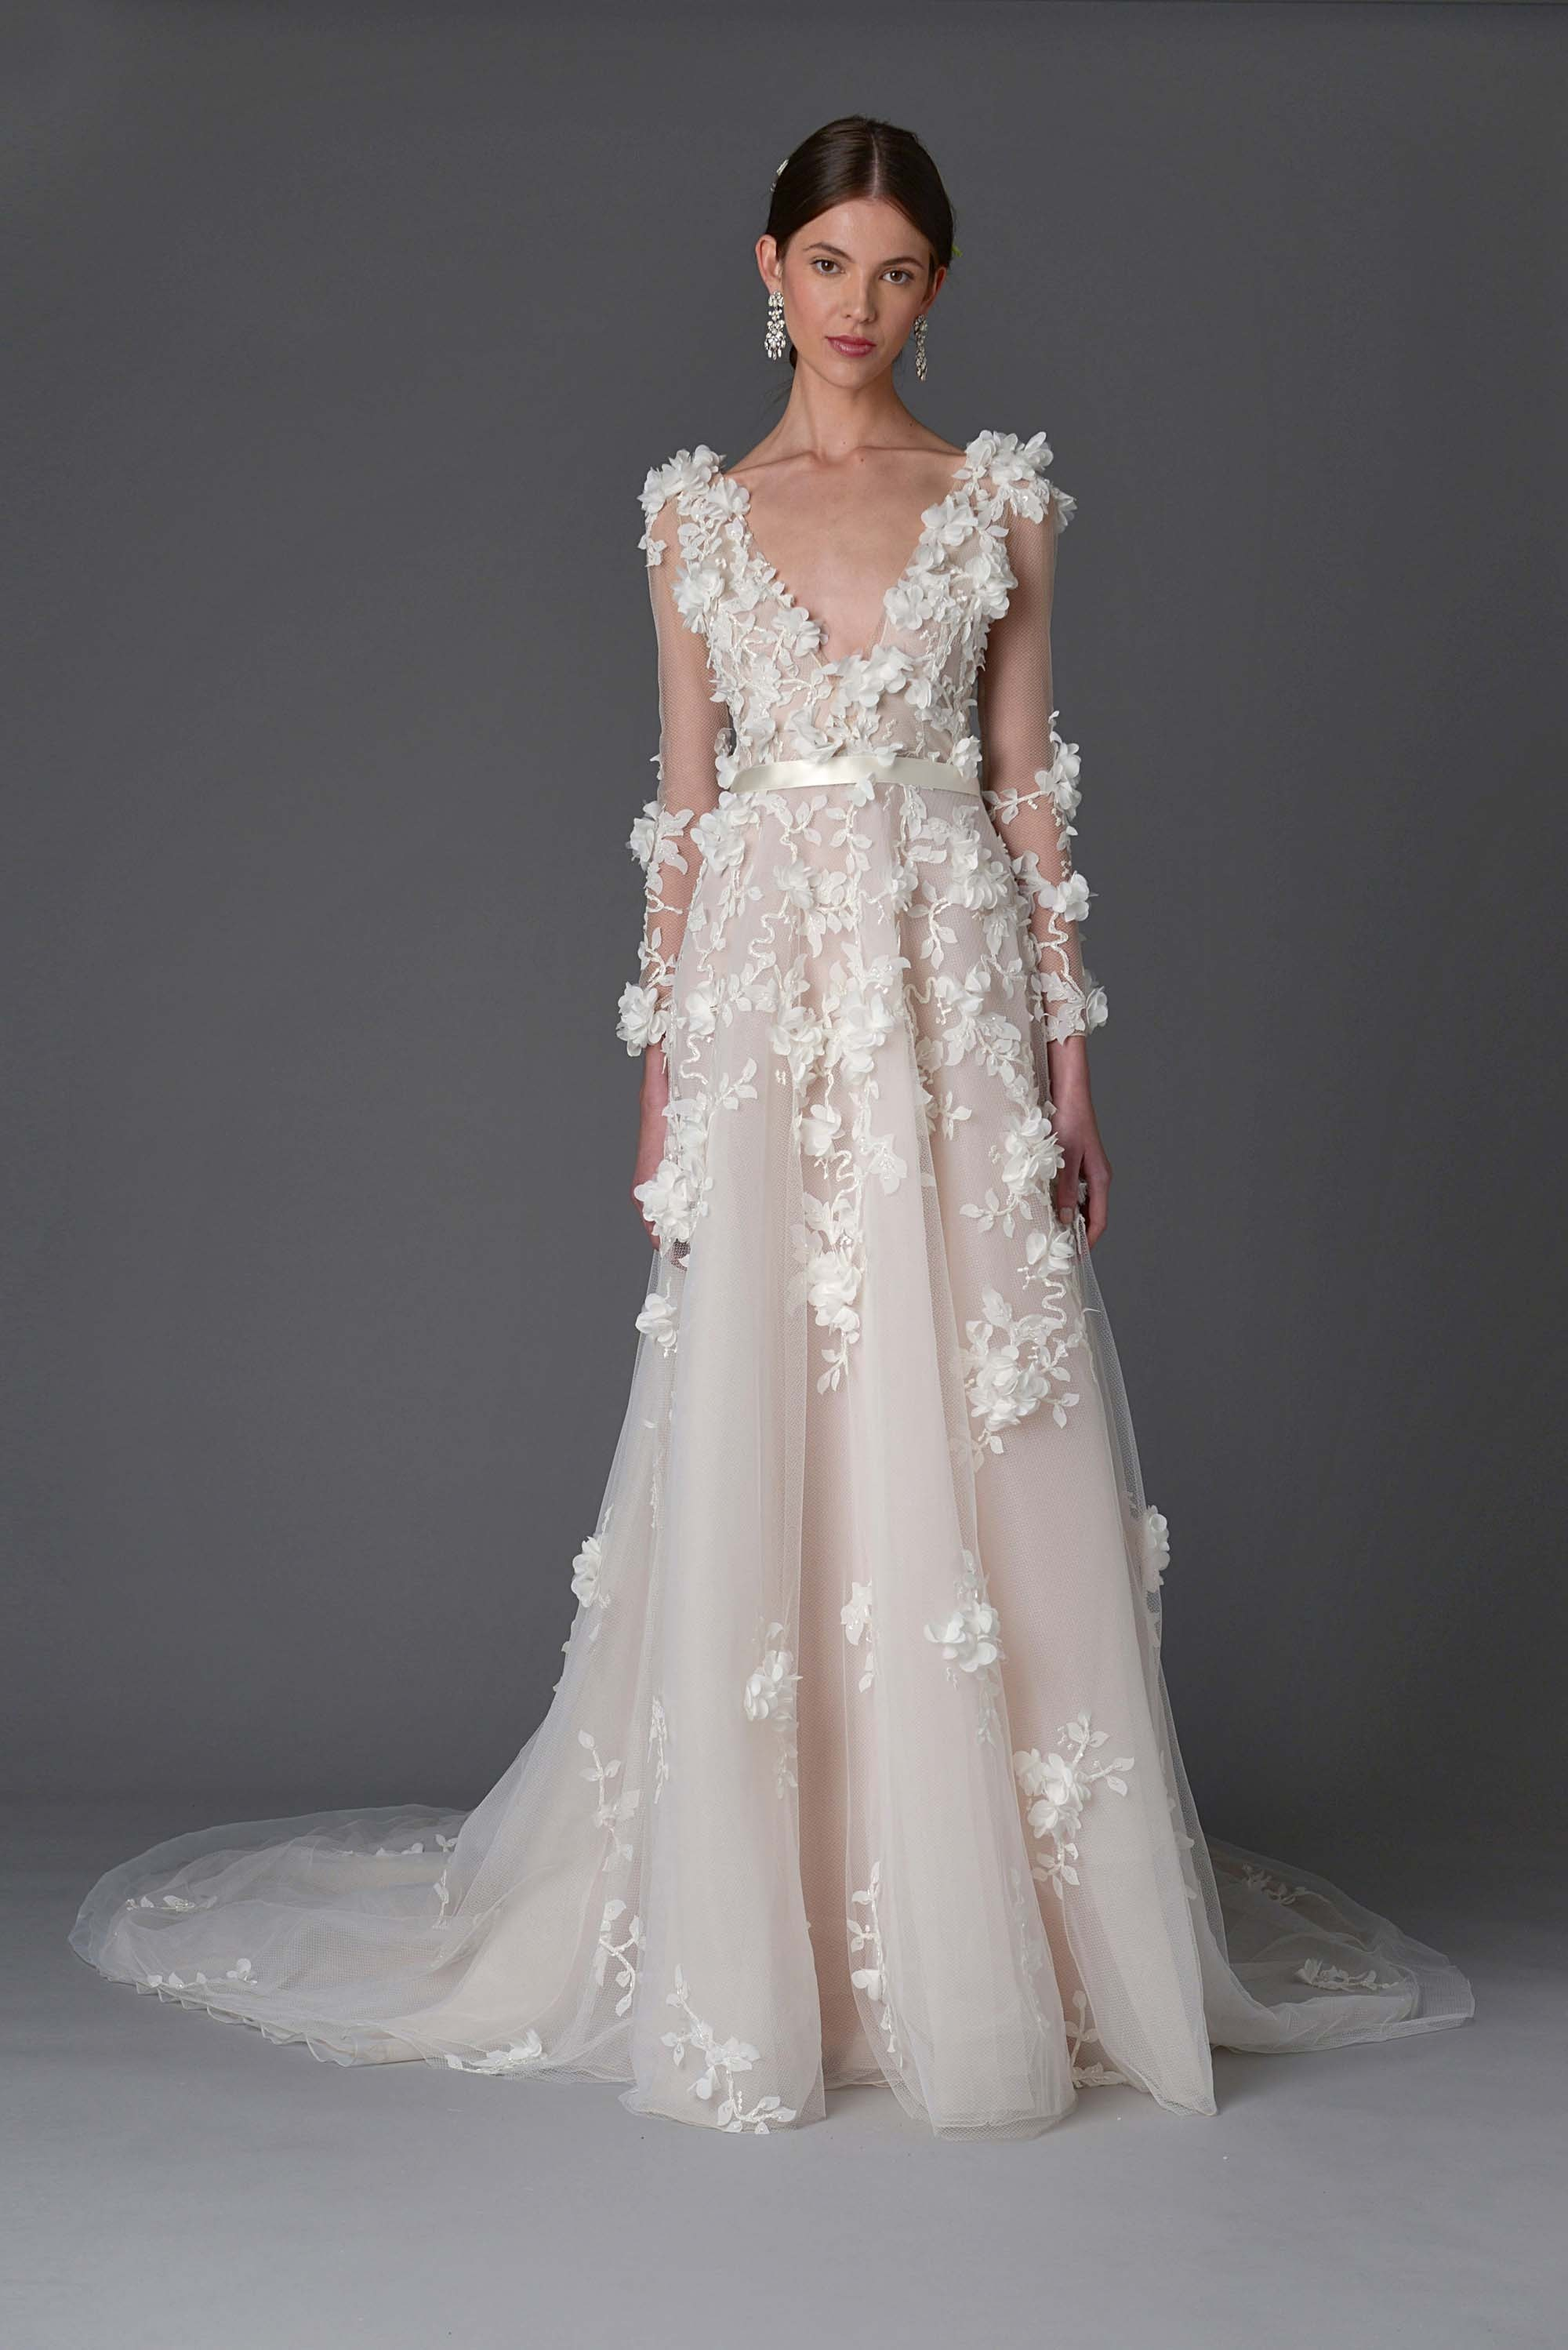 Image courtesy of Marchesa via vogue.com